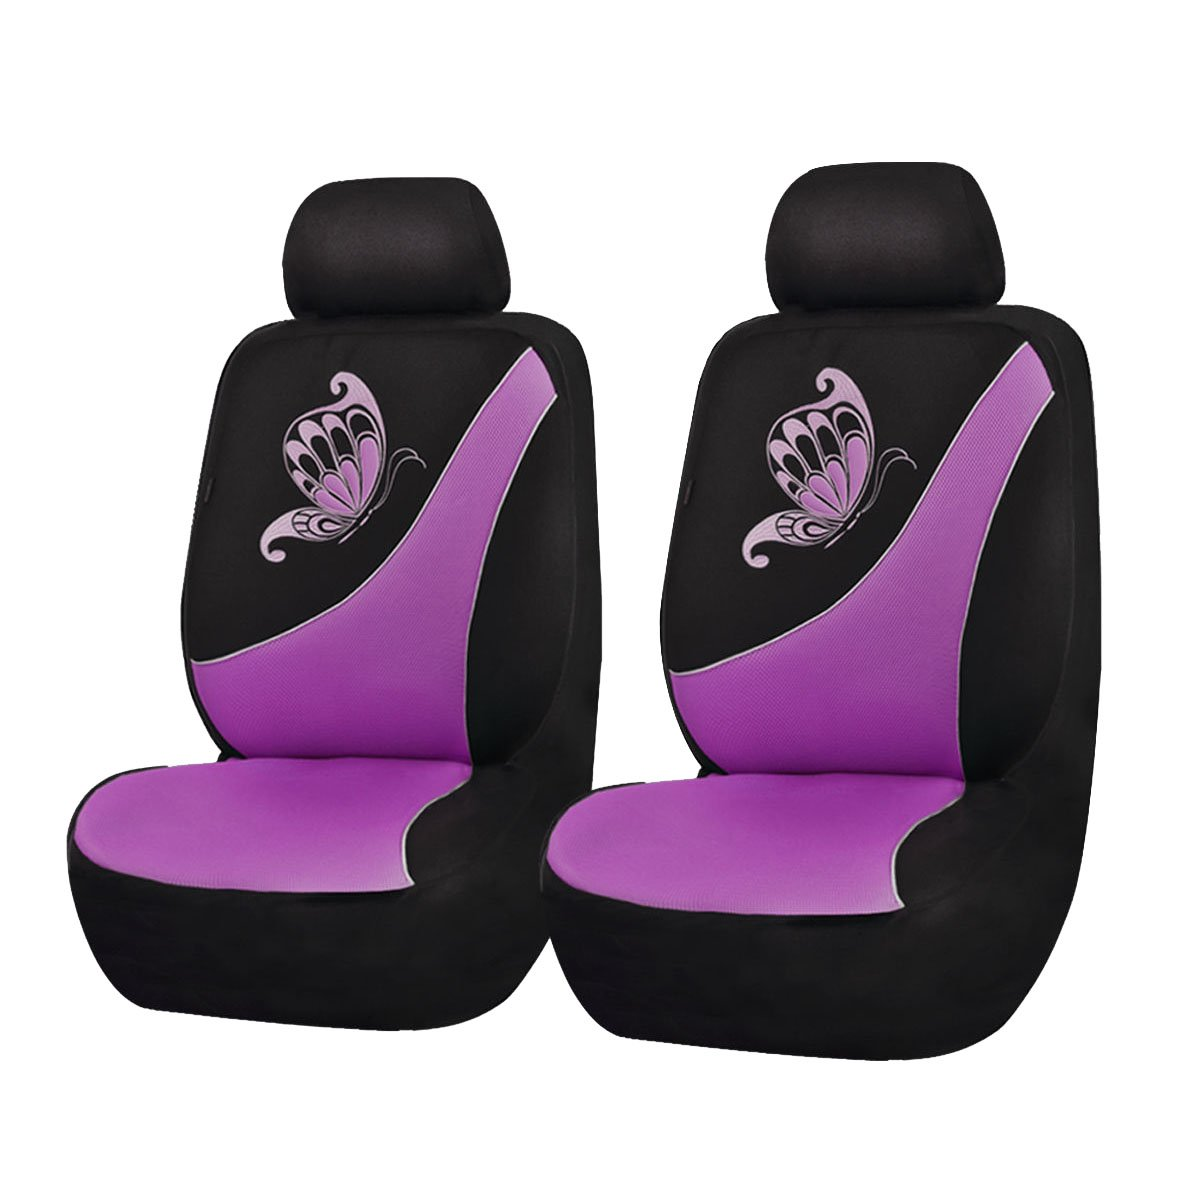 Ningbo Qiyang International Trade Co Flying Banner Purple Mesh Seat Cover for Trucks Universal Seat Covers for Cars Full Set with Butterfly Embroidery Design 11 Pcs, Pink Ltd